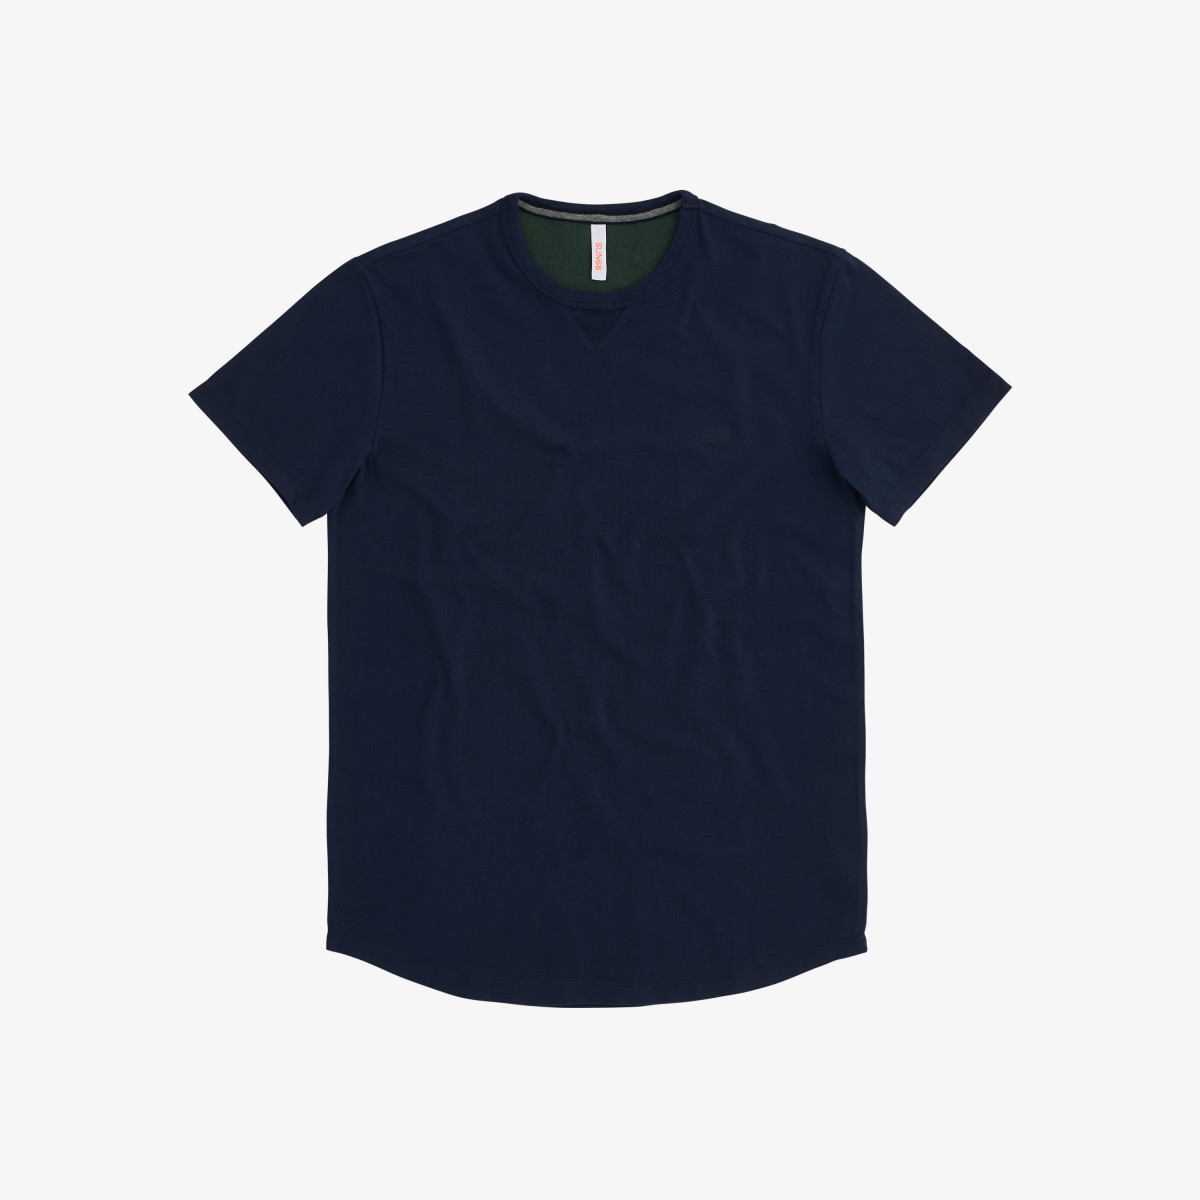 T-SHIRT NIKI S/S NAVY BLUE